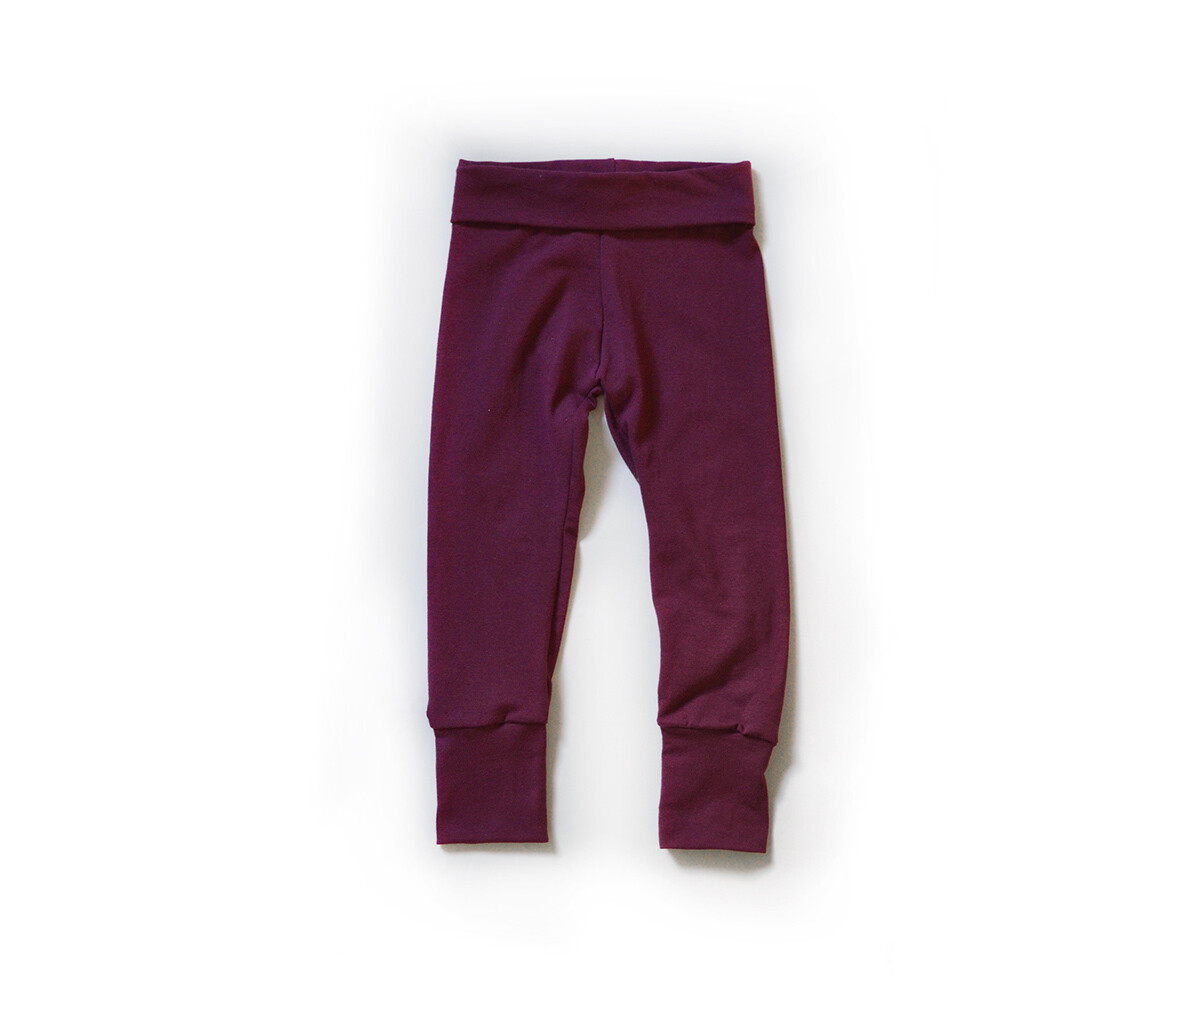 Little Sprout Pants™ in Cranberry | NEW Fall 2019